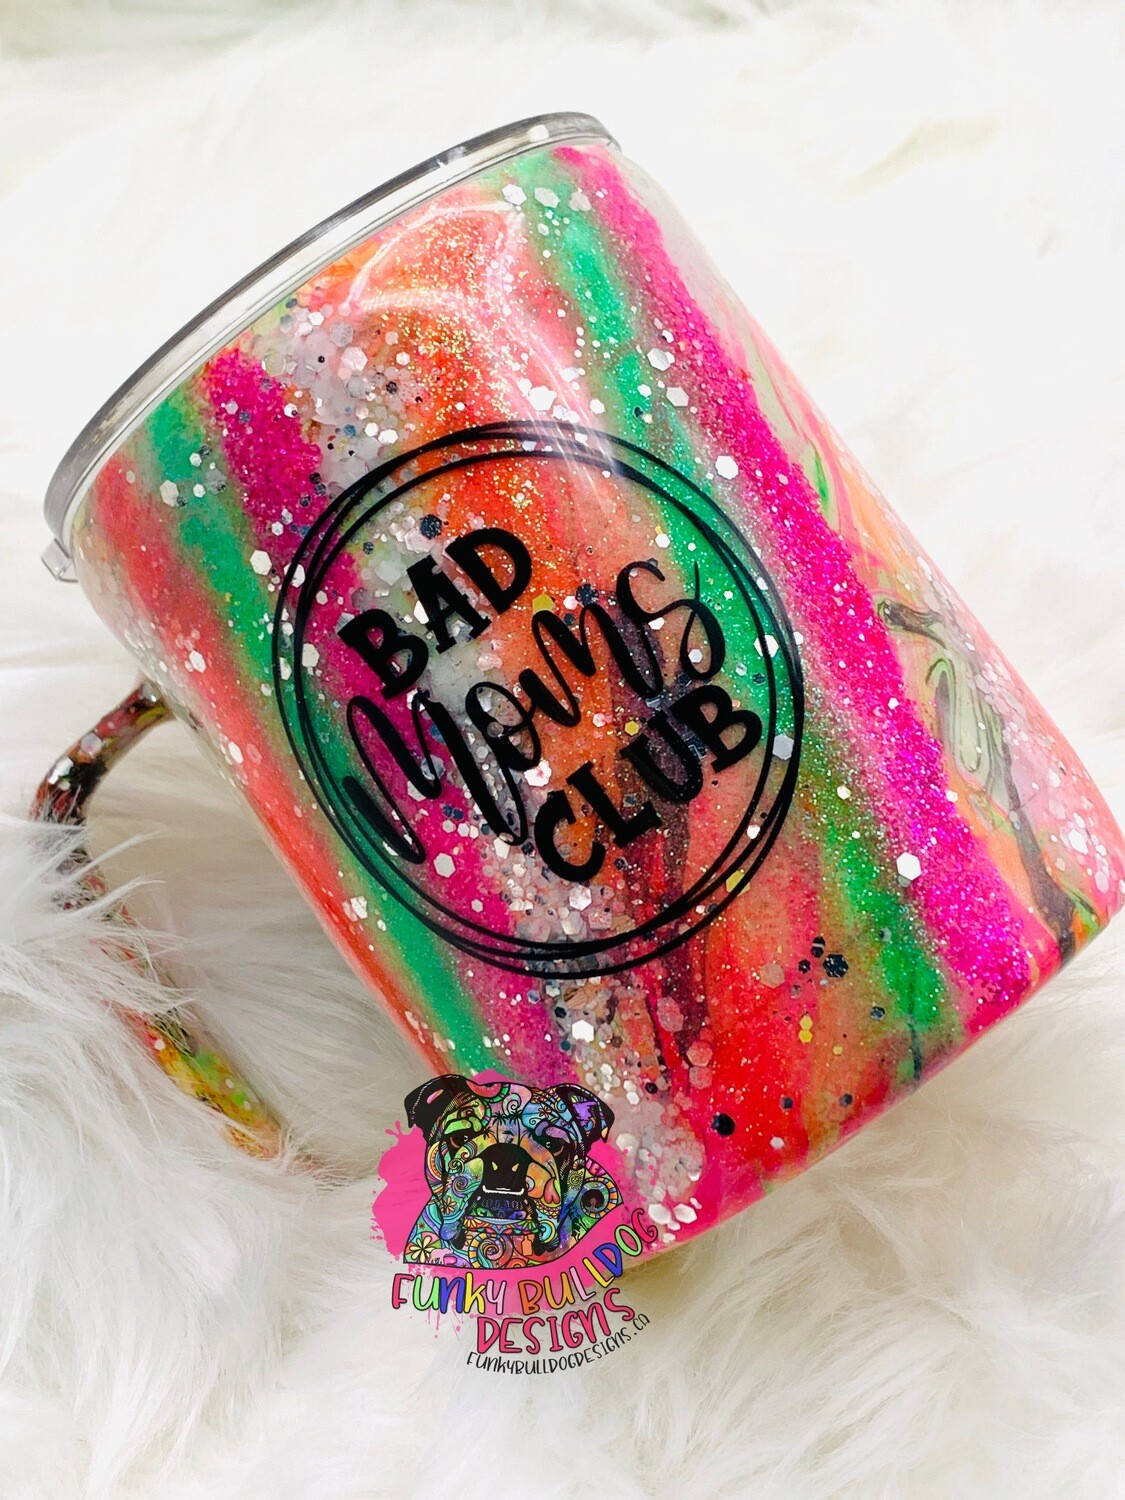 14oz stainless steel painted and glitter tumbler - Bad moms club